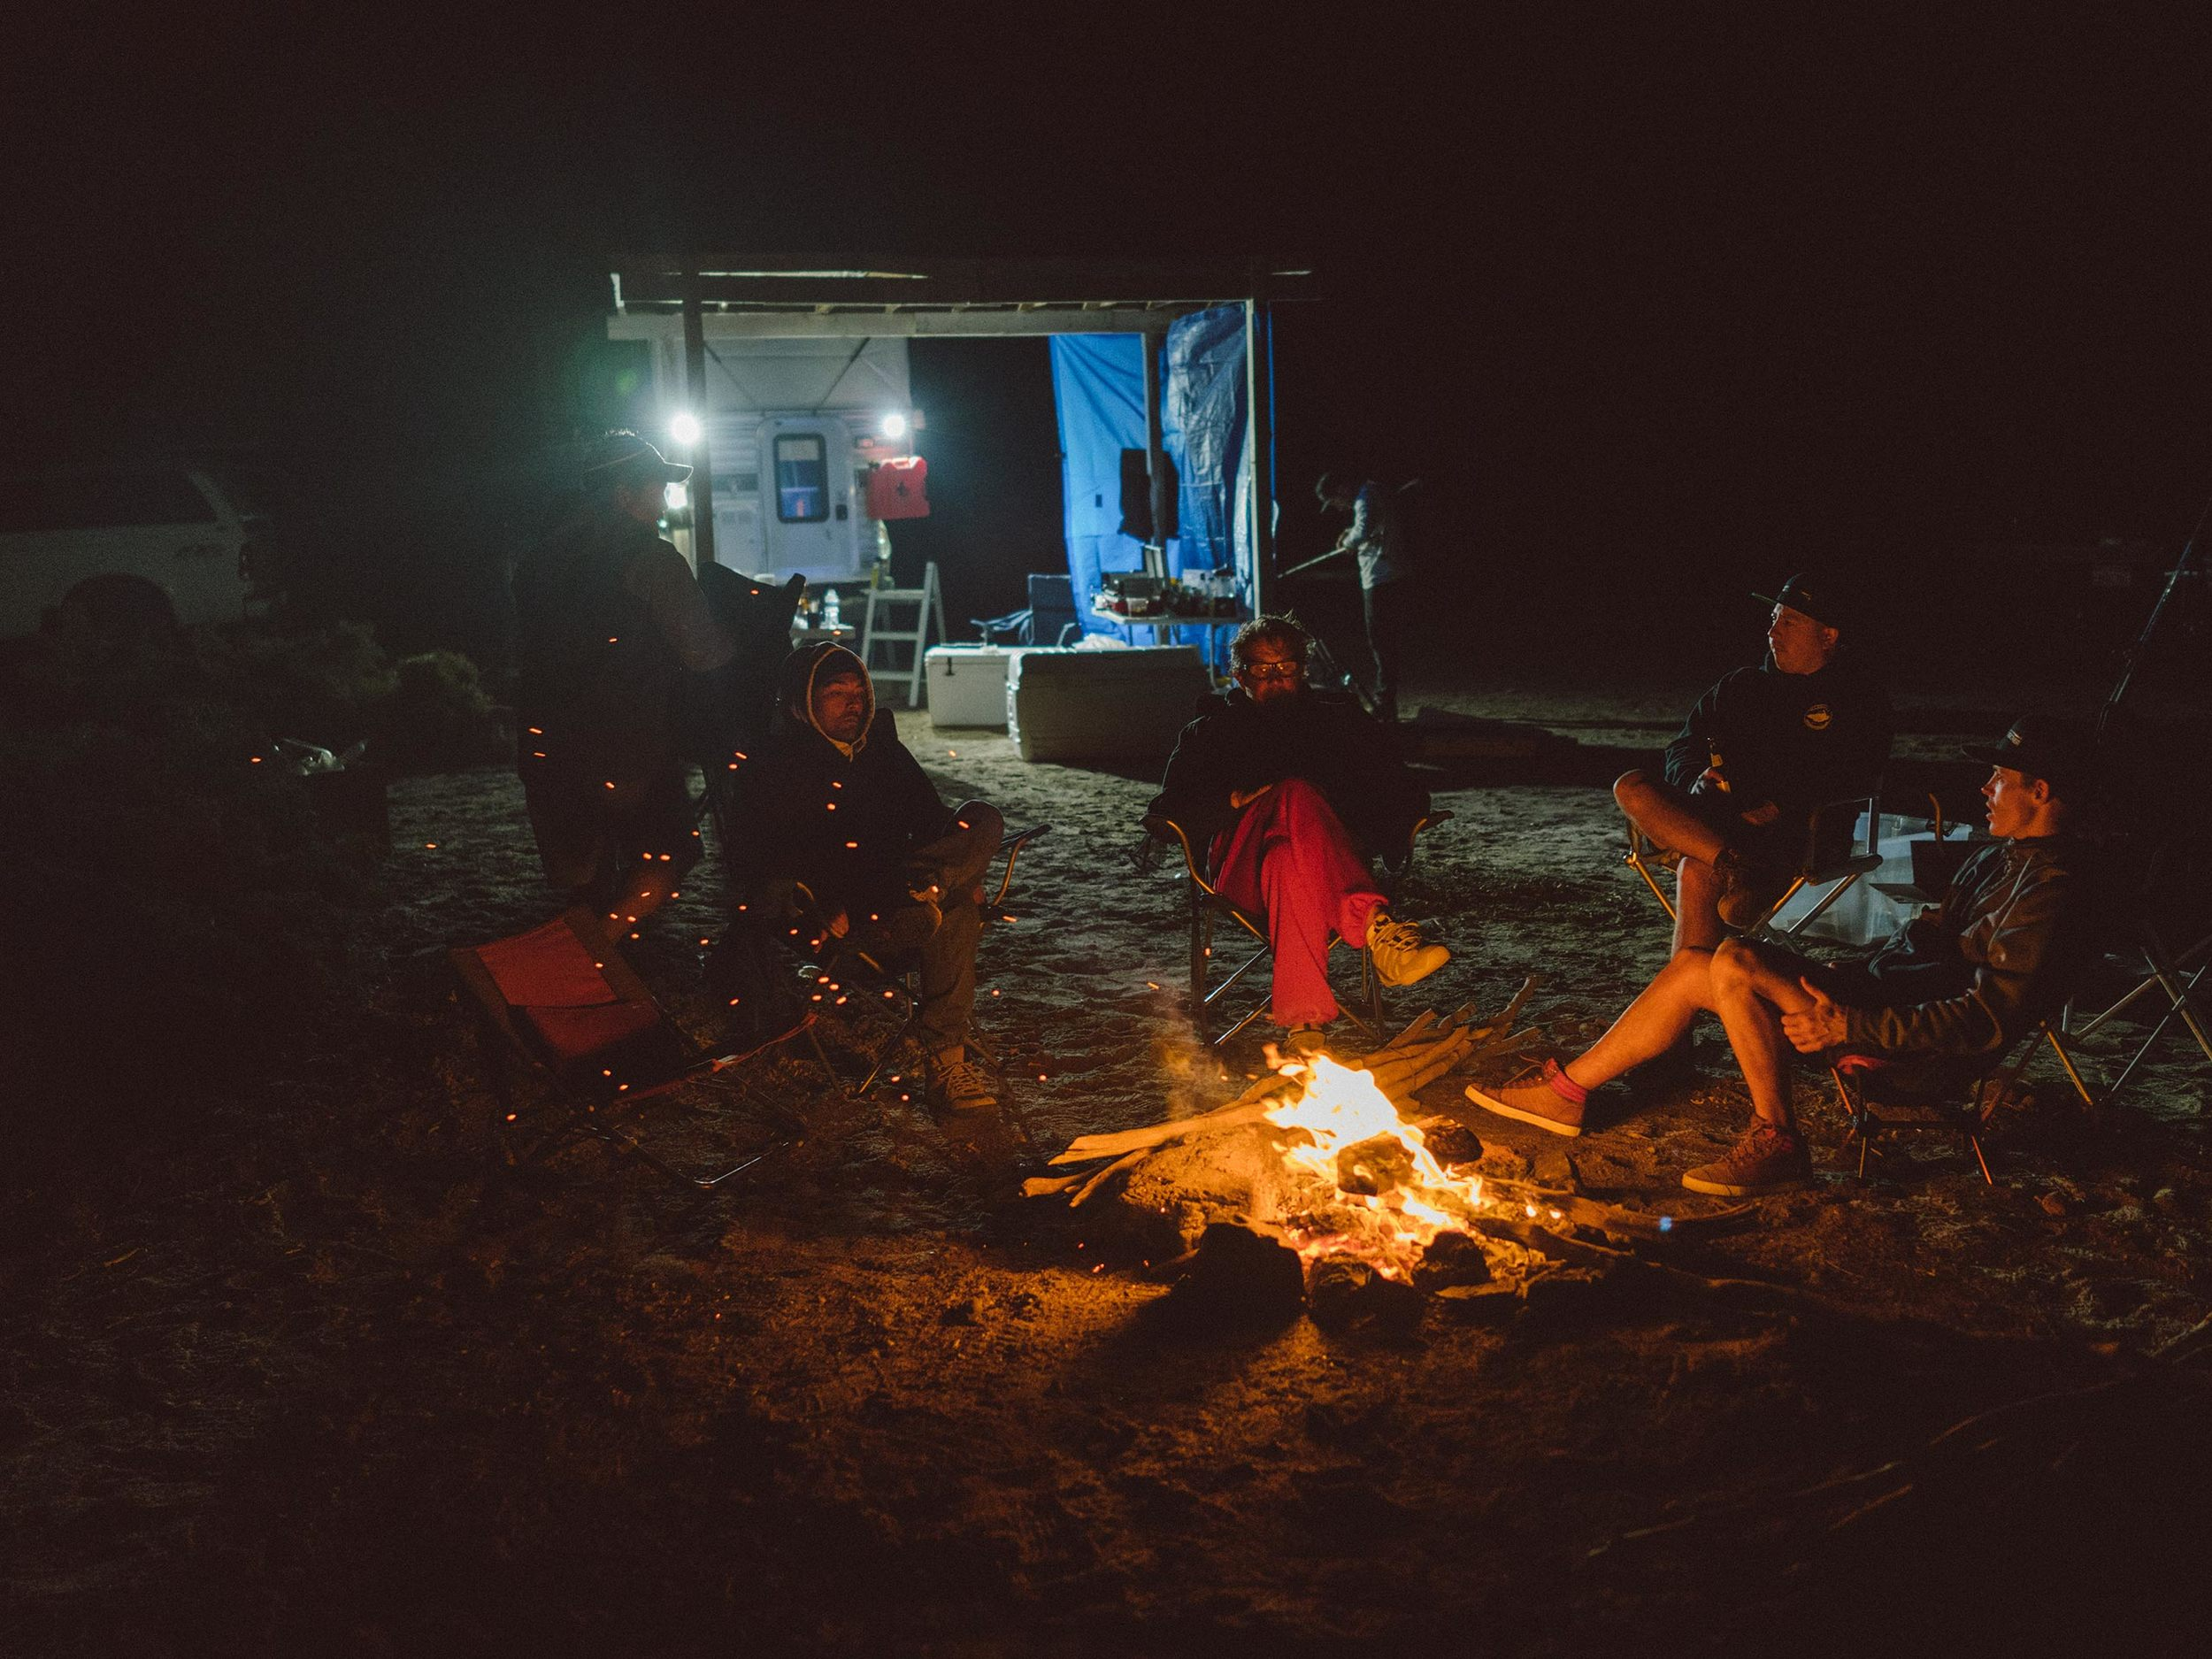 Campfire with the compadres. Planning tommorow's attack.